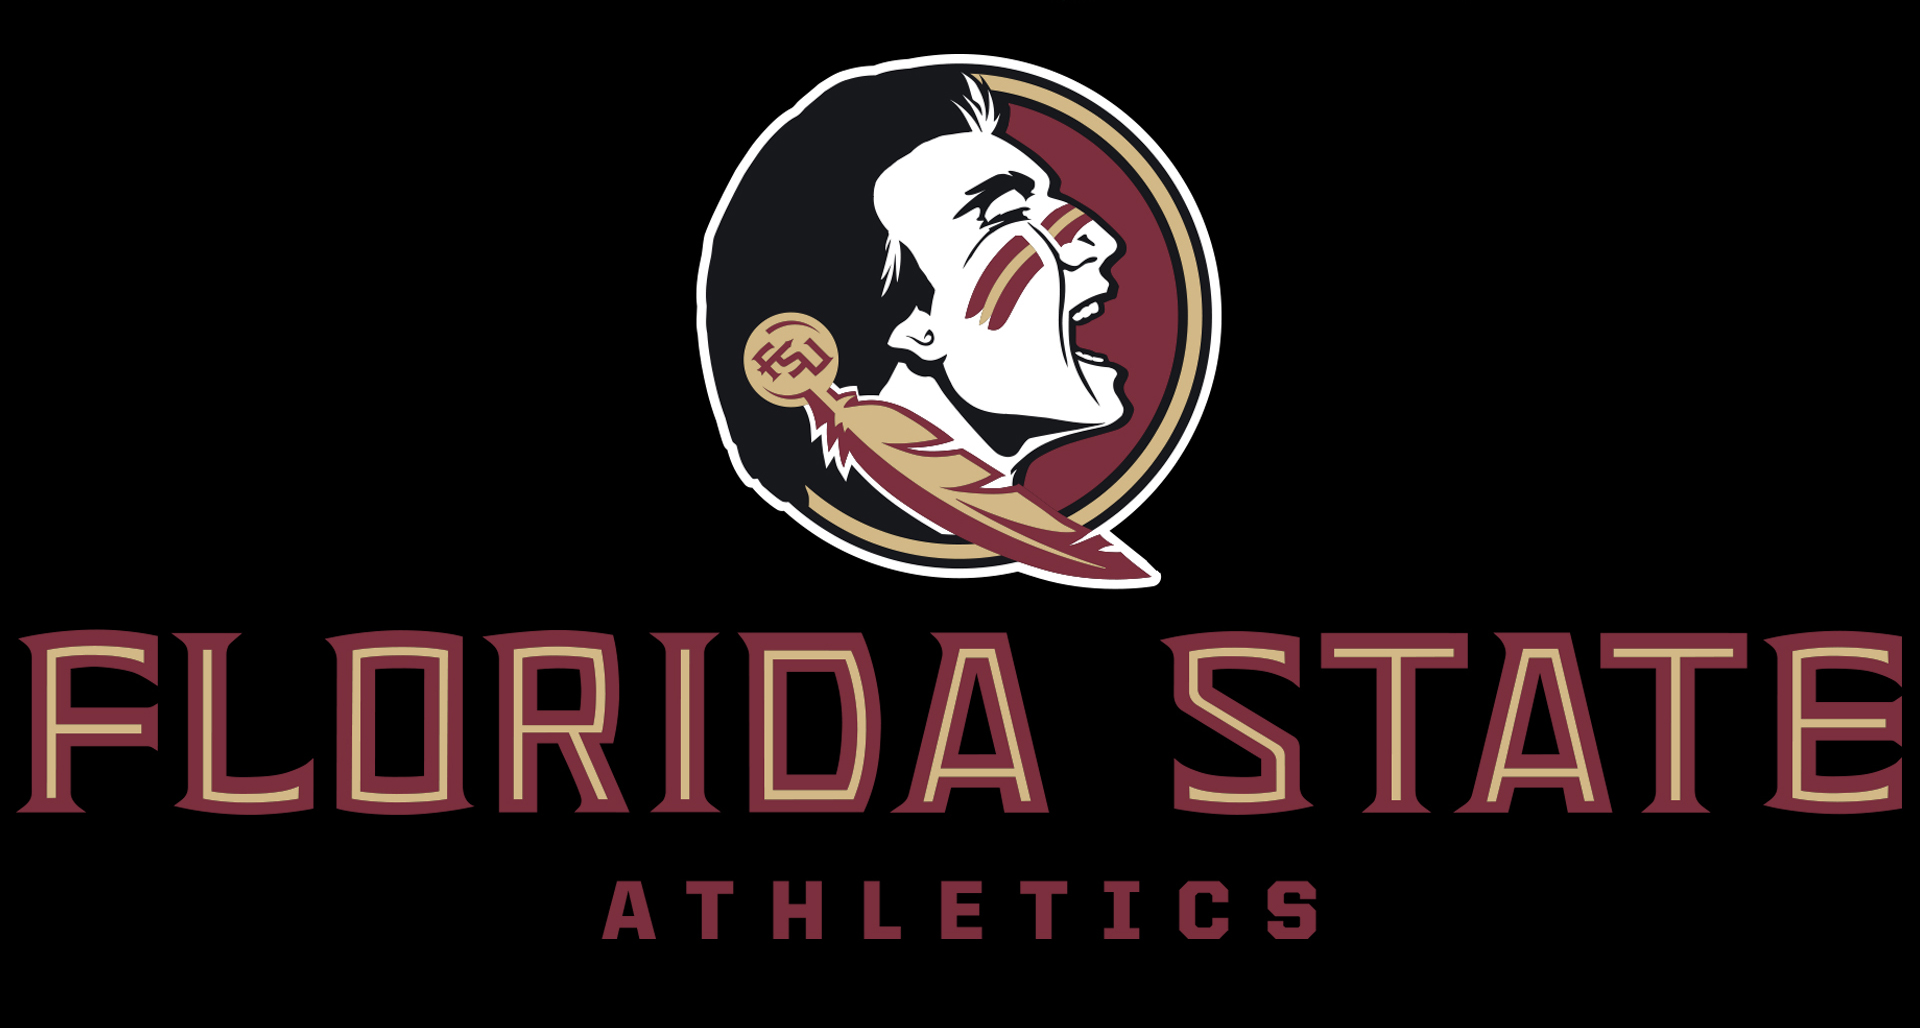 Wallpaper Volleyball Quotes Florida State Wallpapers Pixelstalk Net